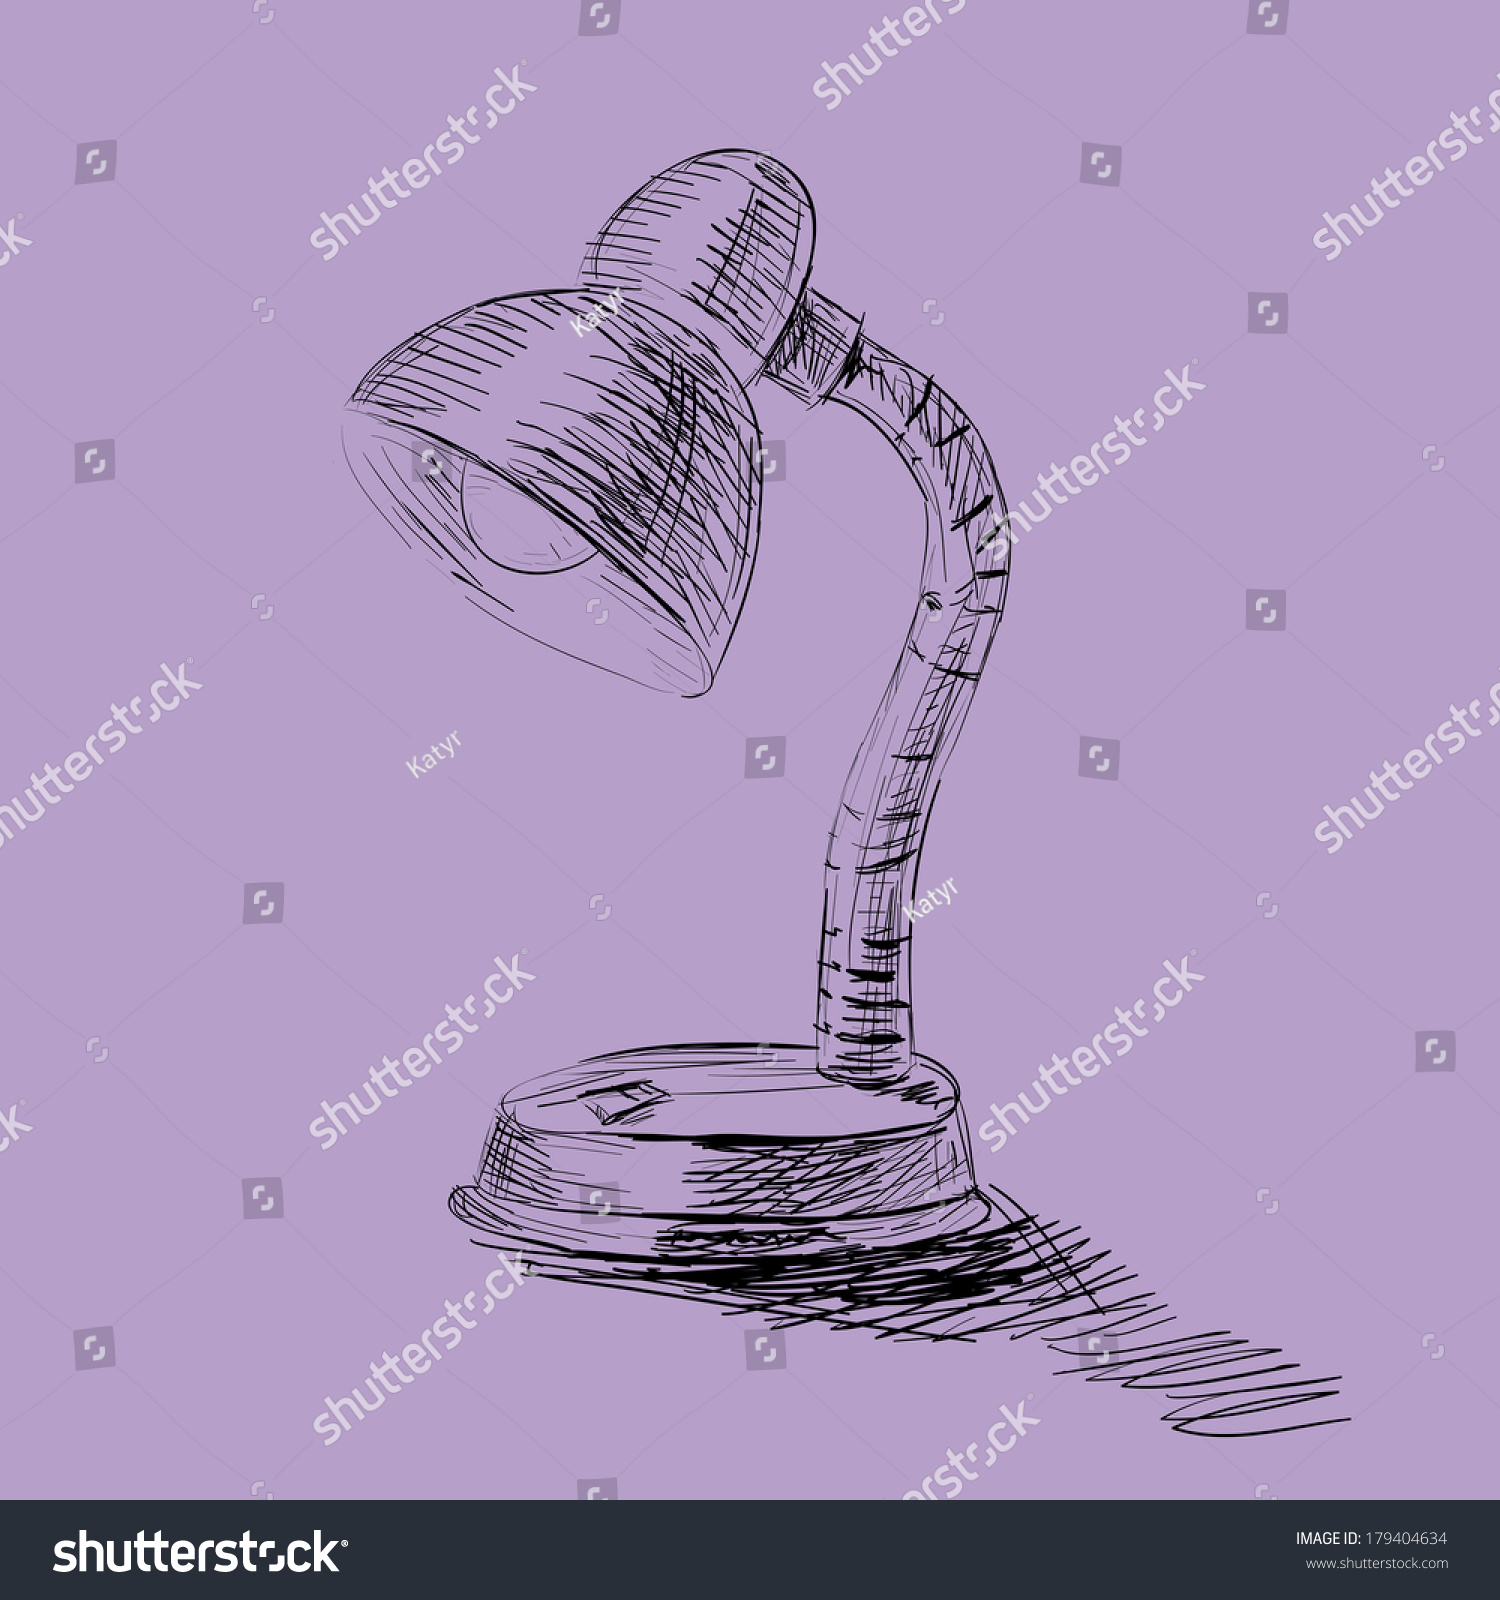 Table lamp for drawing - Table Lamp Hand Draw